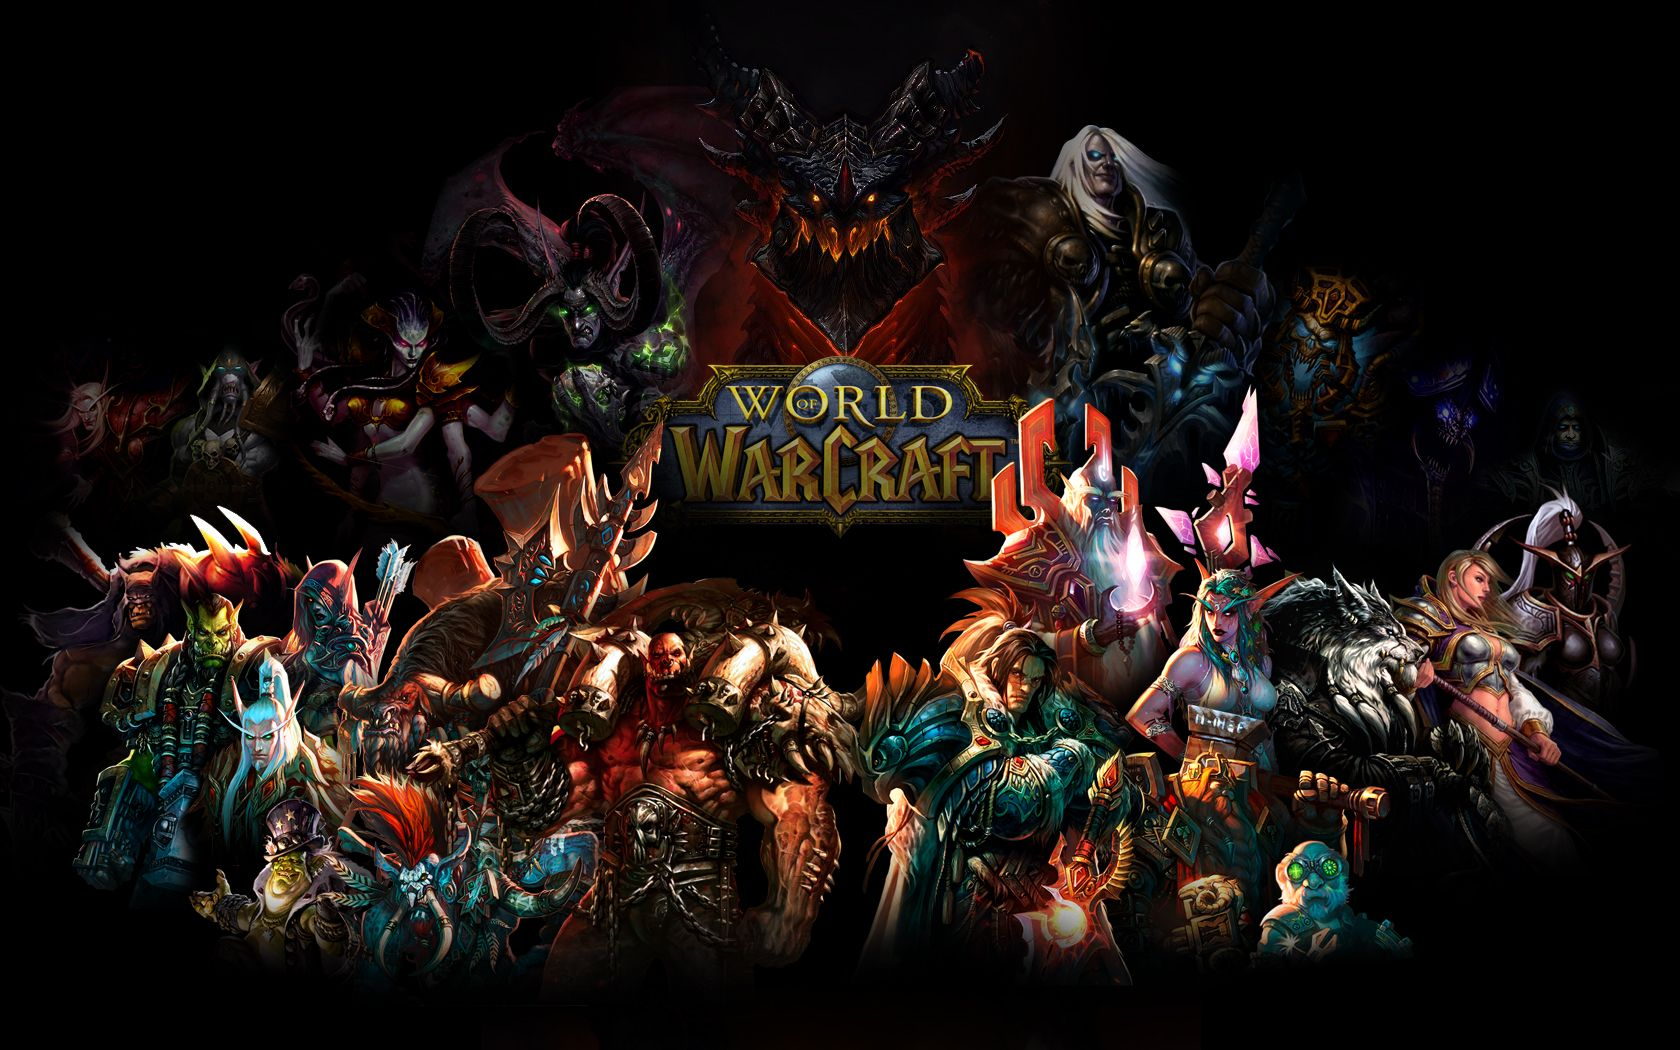 World Of Warcraft Free World Of Warcraft People Wallpapers Free World Of Warcraft World Of Warcraft Mundo De Warcraft Videojuegos